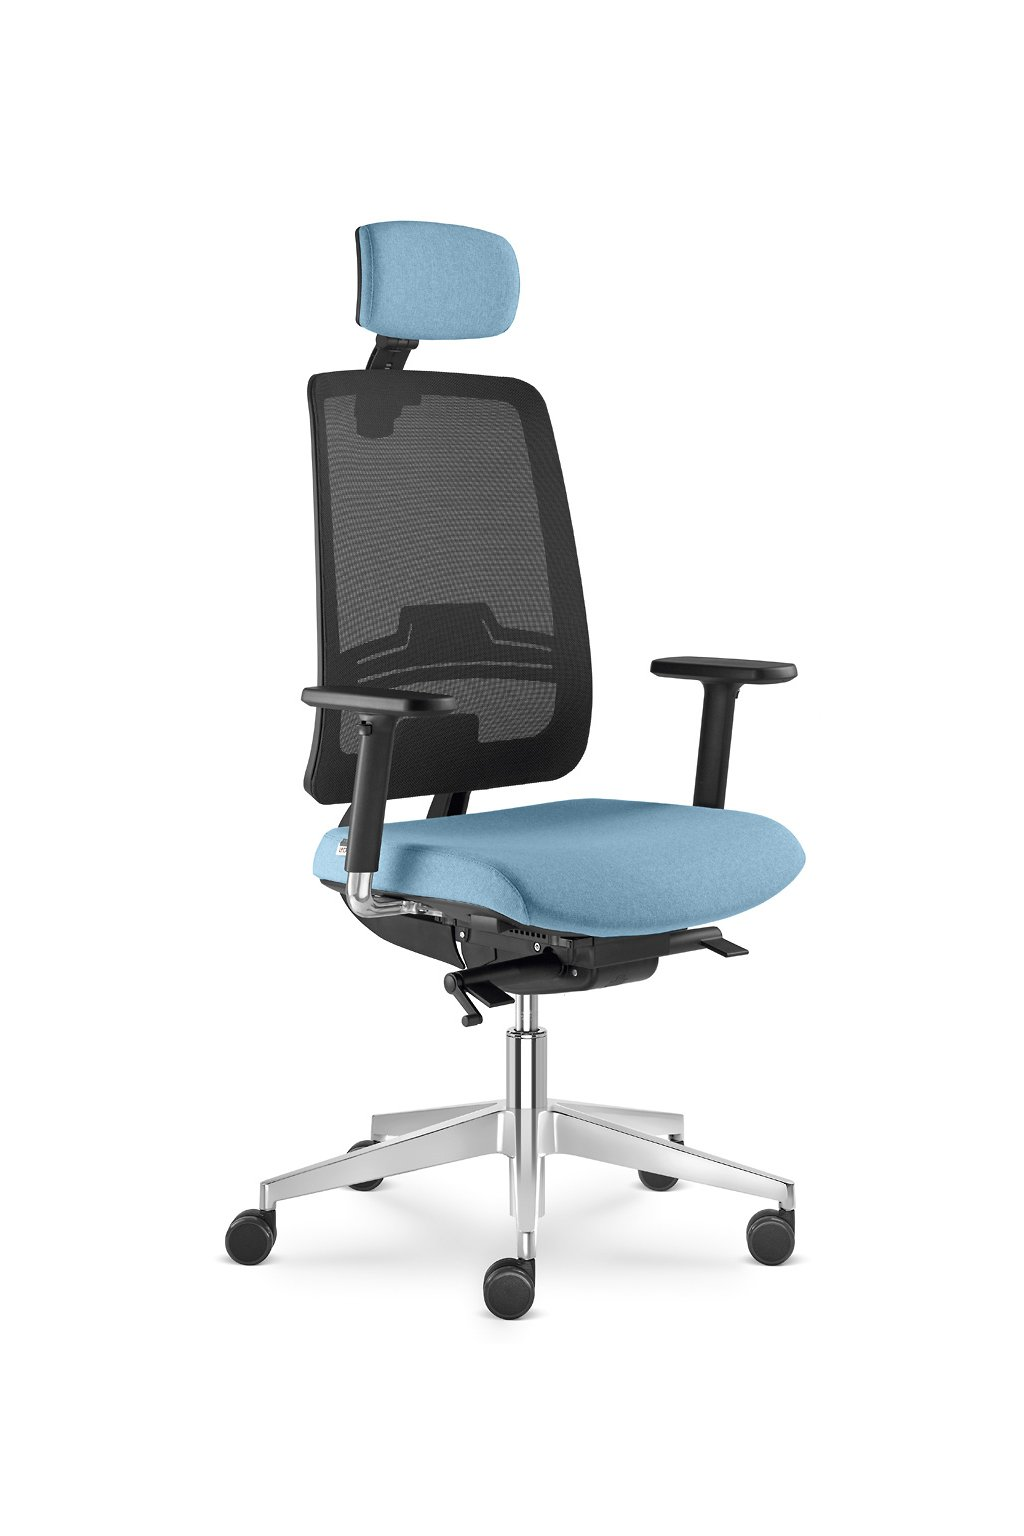 LD SEATING židle SWING 515 SYS - P - BR209